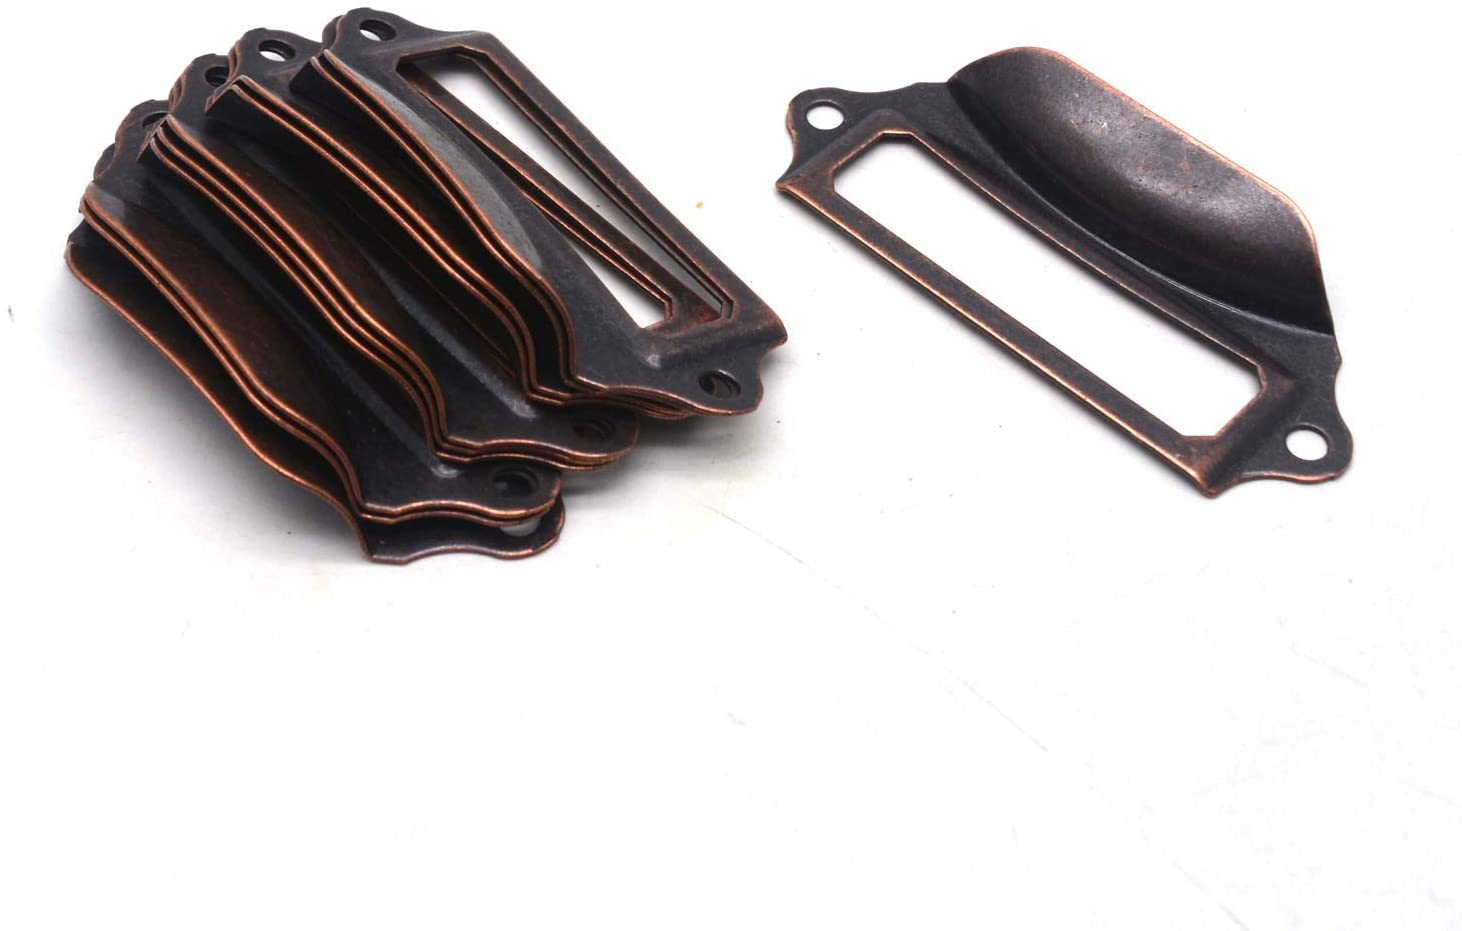 Antrader 10PCS Antique Iron 2-3/4 Inch x 1-1/5 Inch Tag Label Card Holder Office Drawer Pull Handle, Copper Tone